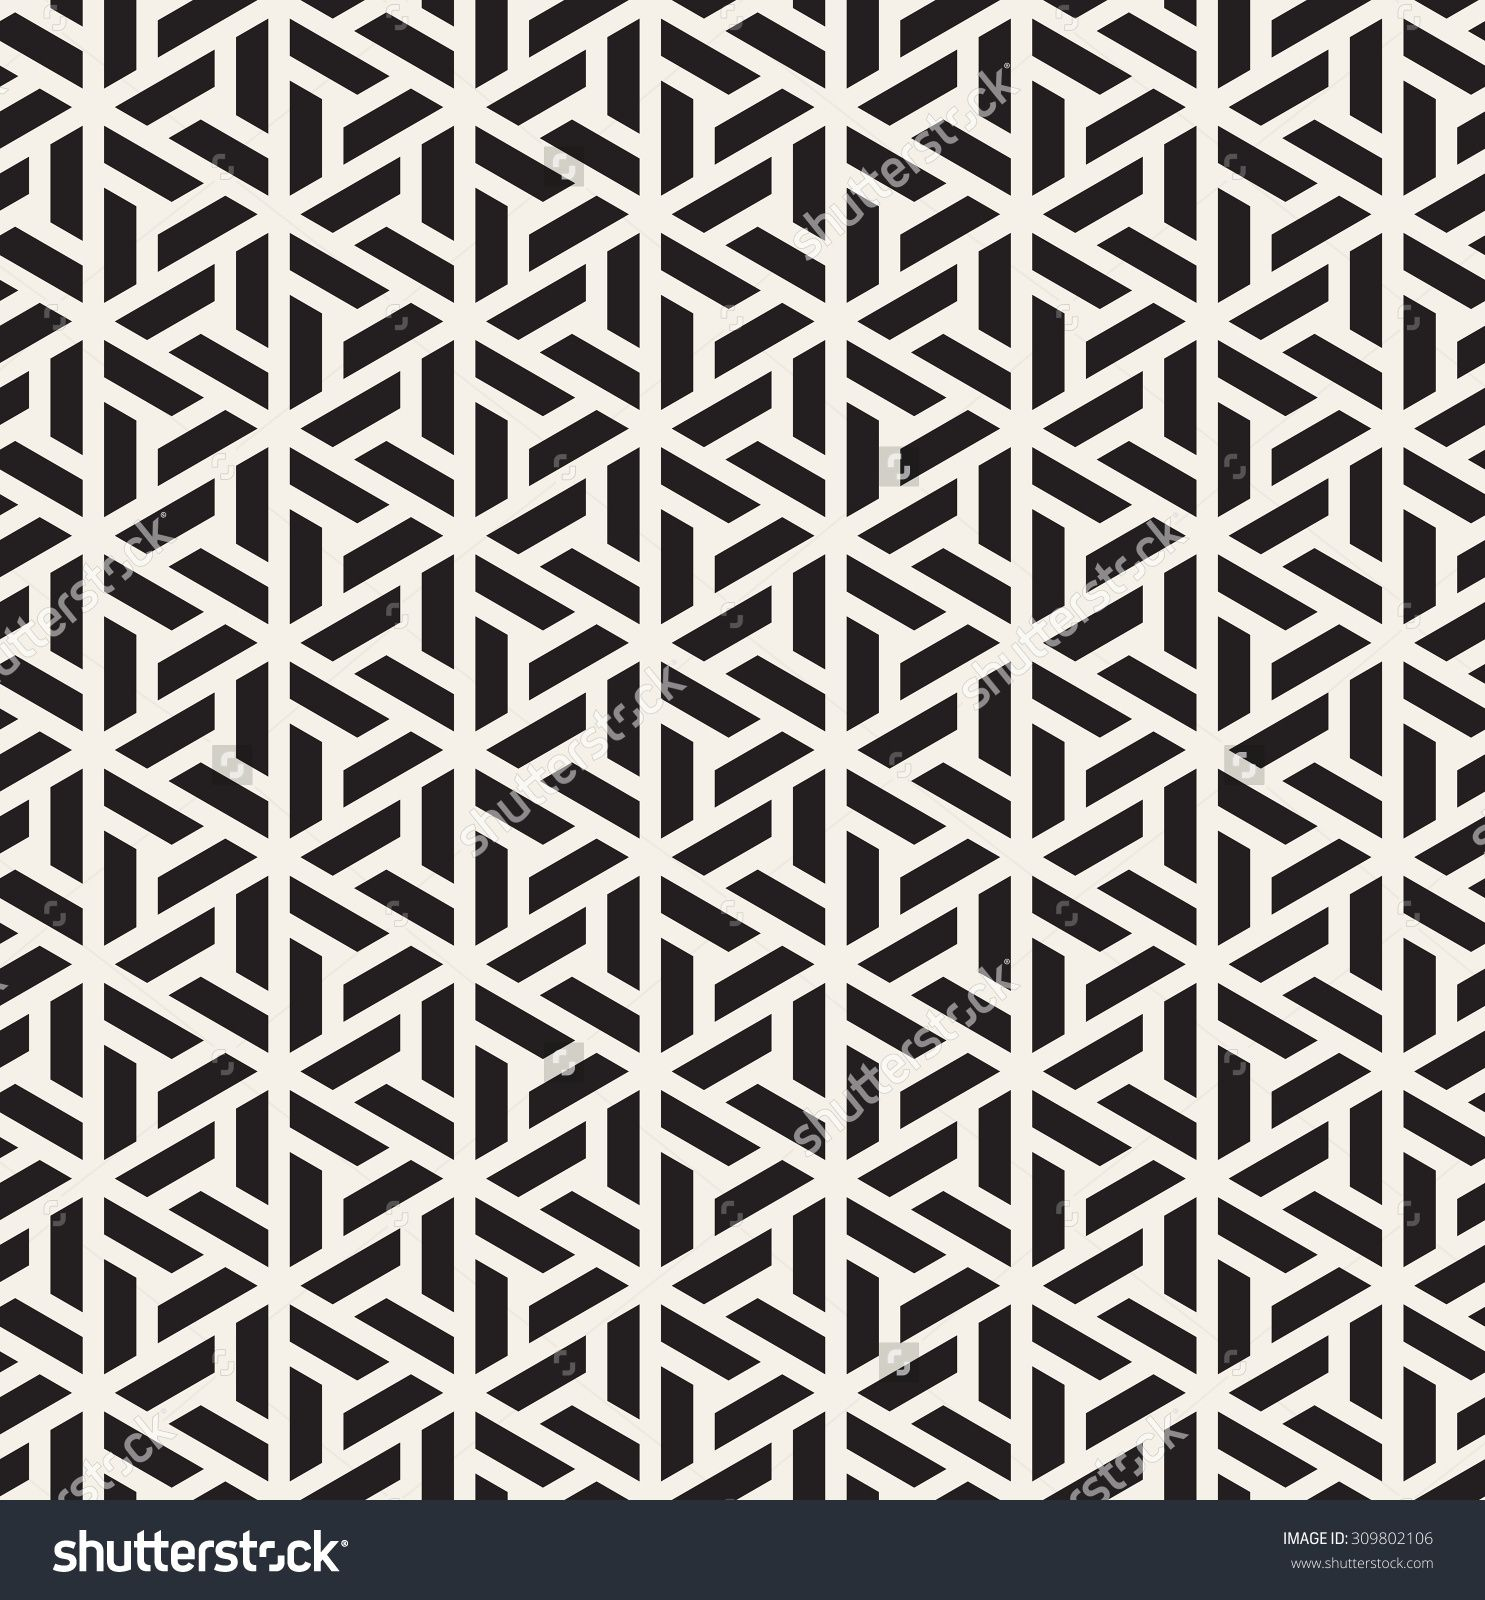 Vector Seamless Pattern. Modern Stylish Linear Texture